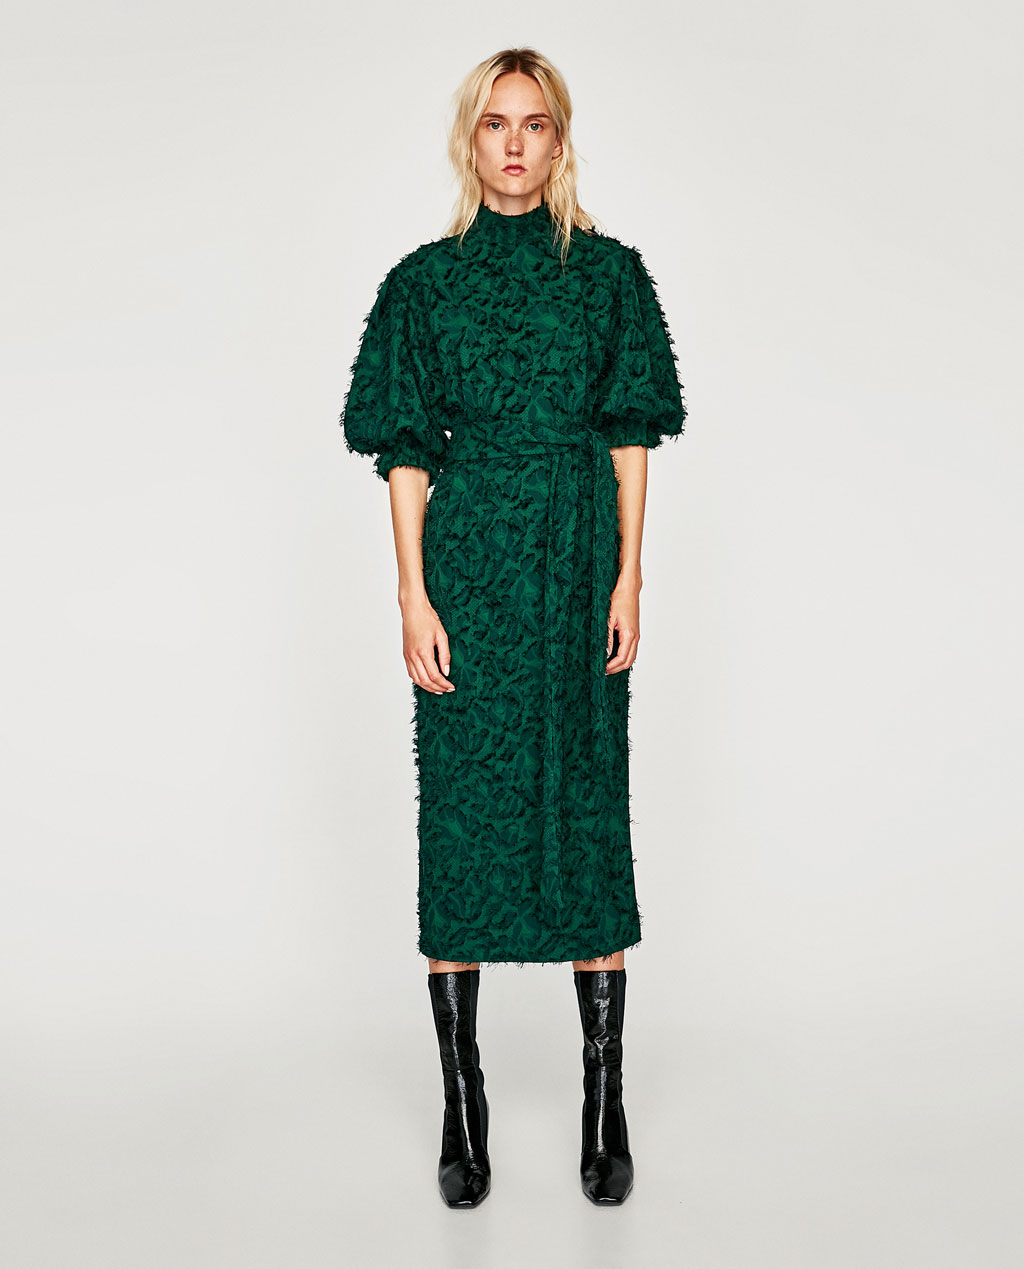 ROSE & IVY Journal Currently Loving | Emerald Midi Dress Zara